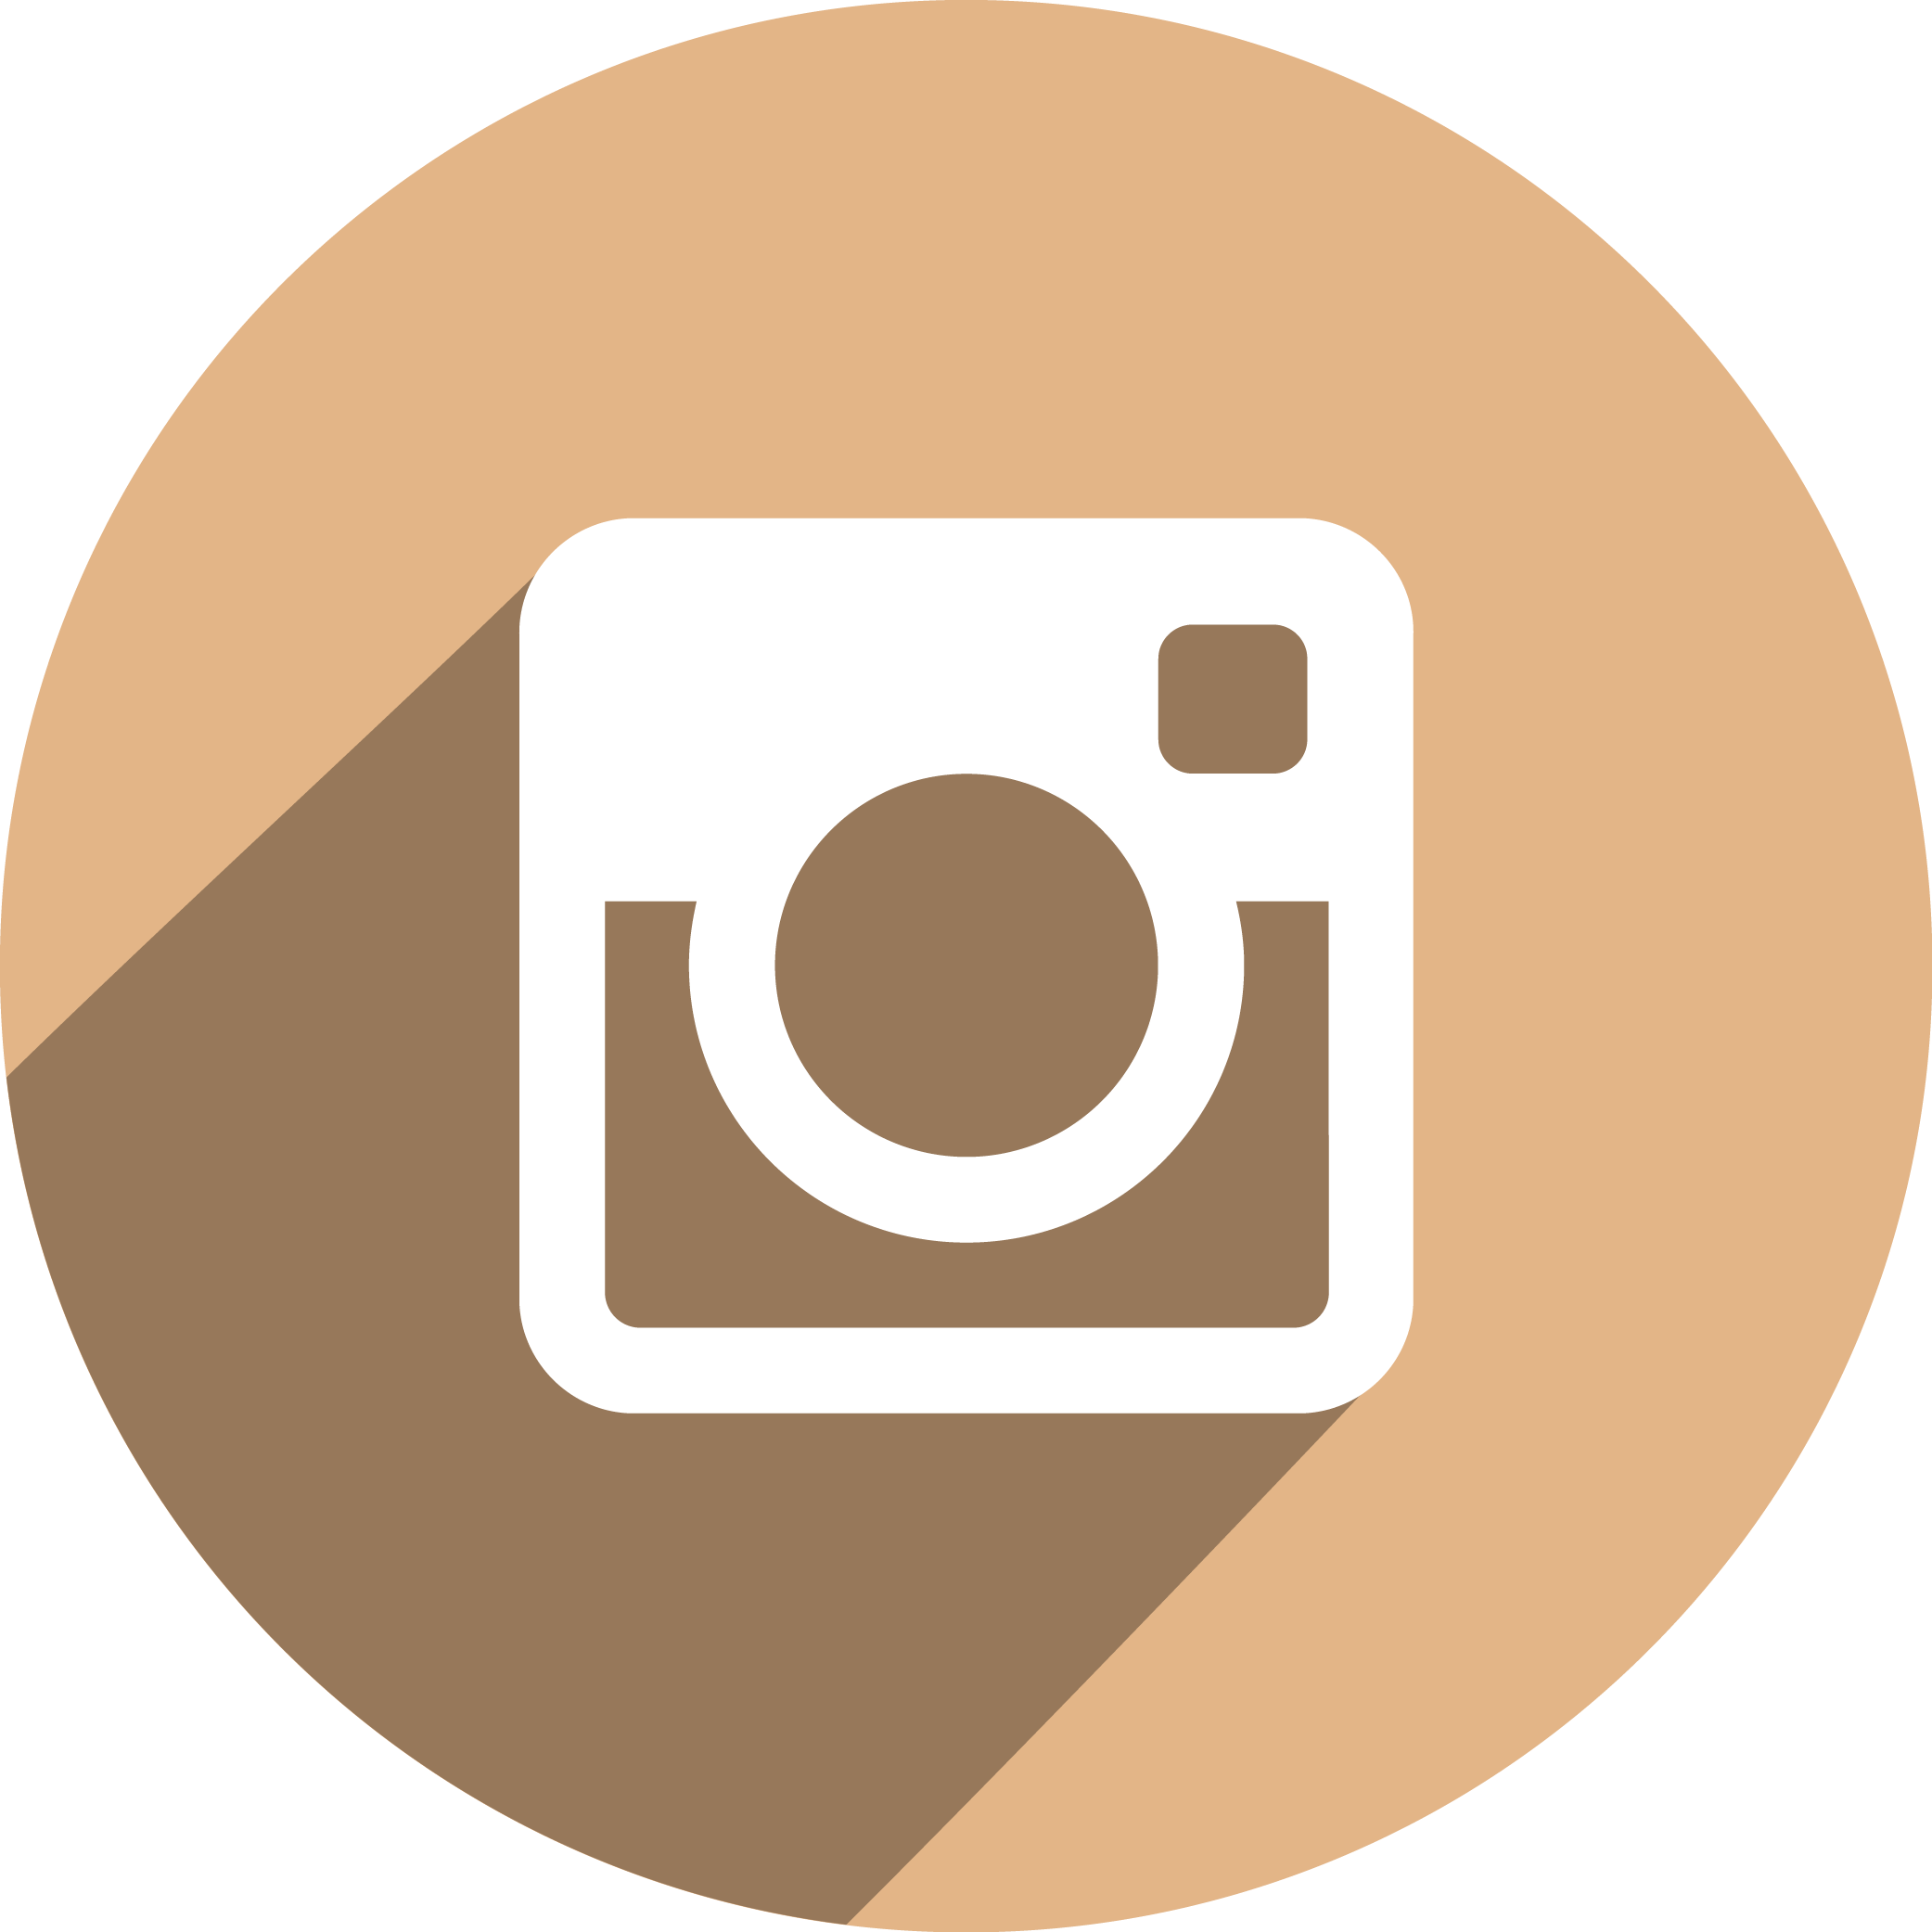 Instagramm clipart cartoon pencil. Twitter icon png circle